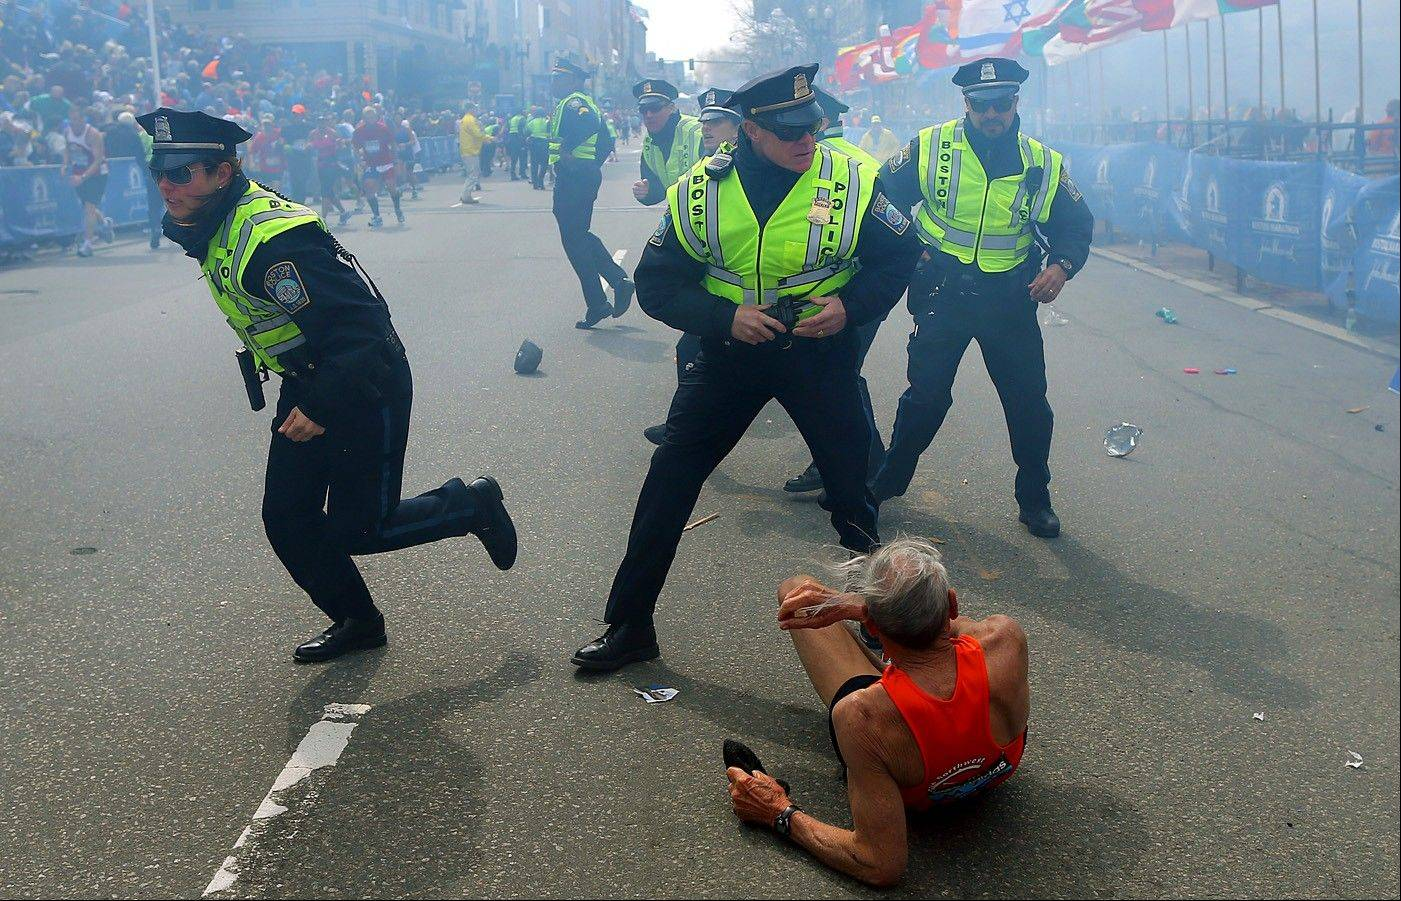 In this Monday, April 15, 2013 file photo, Bill Iffrig, 78, lies on the ground as police officers react to a second explosion at the finish line of the Boston Marathon in Boston. Iffrig, of Lake Stevens, Wash., was running his third Boston Marathon and near the finish line when he was knocked down by one of the two bomb blasts.